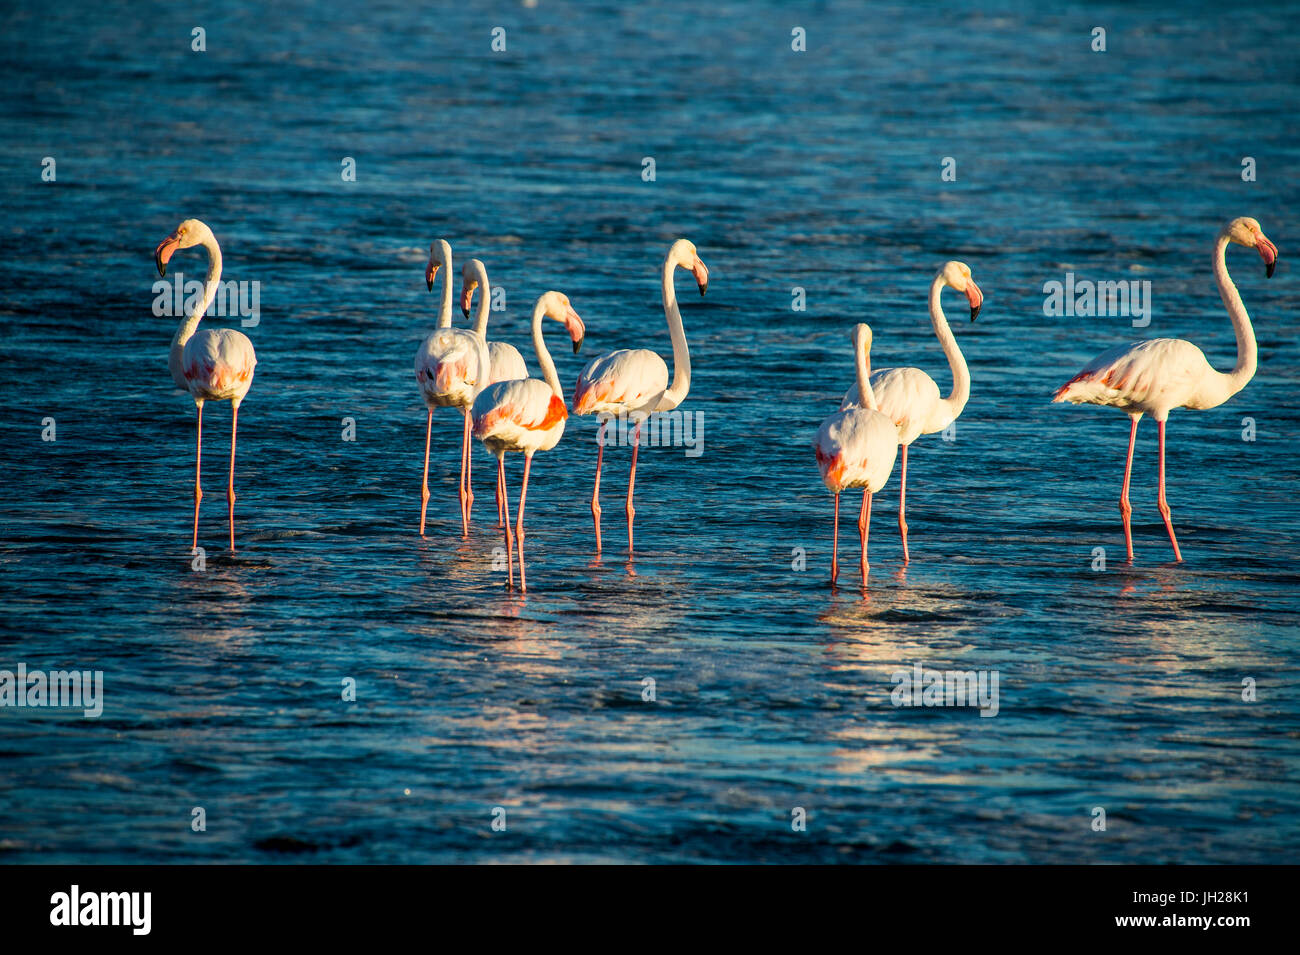 Flamingos in the water (Phoenicopteridae), Luderitz, Namibia, Africa - Stock Image